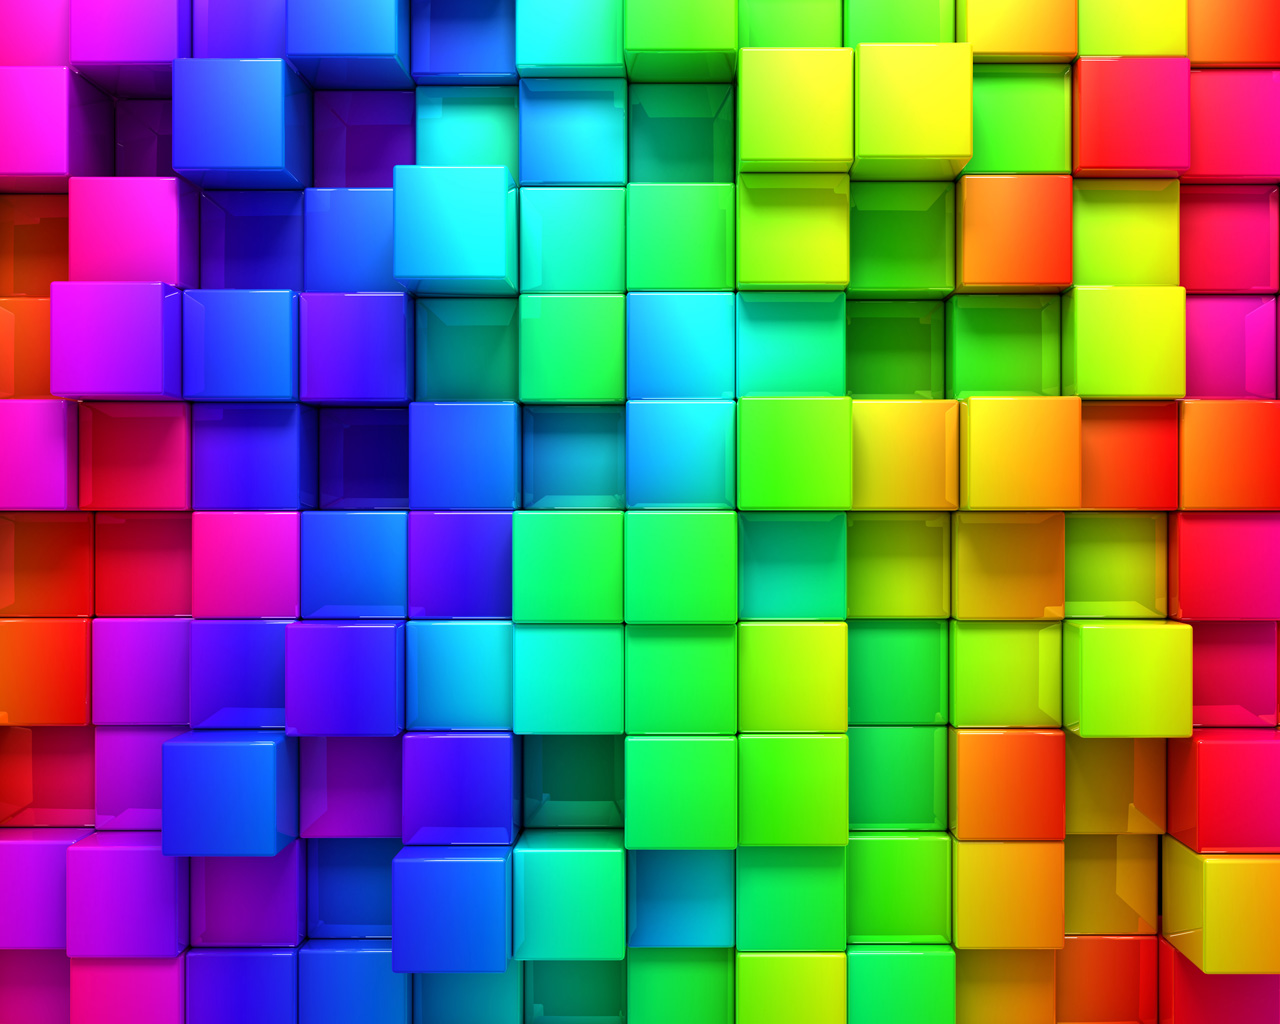 3D Colorful Cubes Backgrounds For PowerPoint   3D PPT Templates 1280x1024